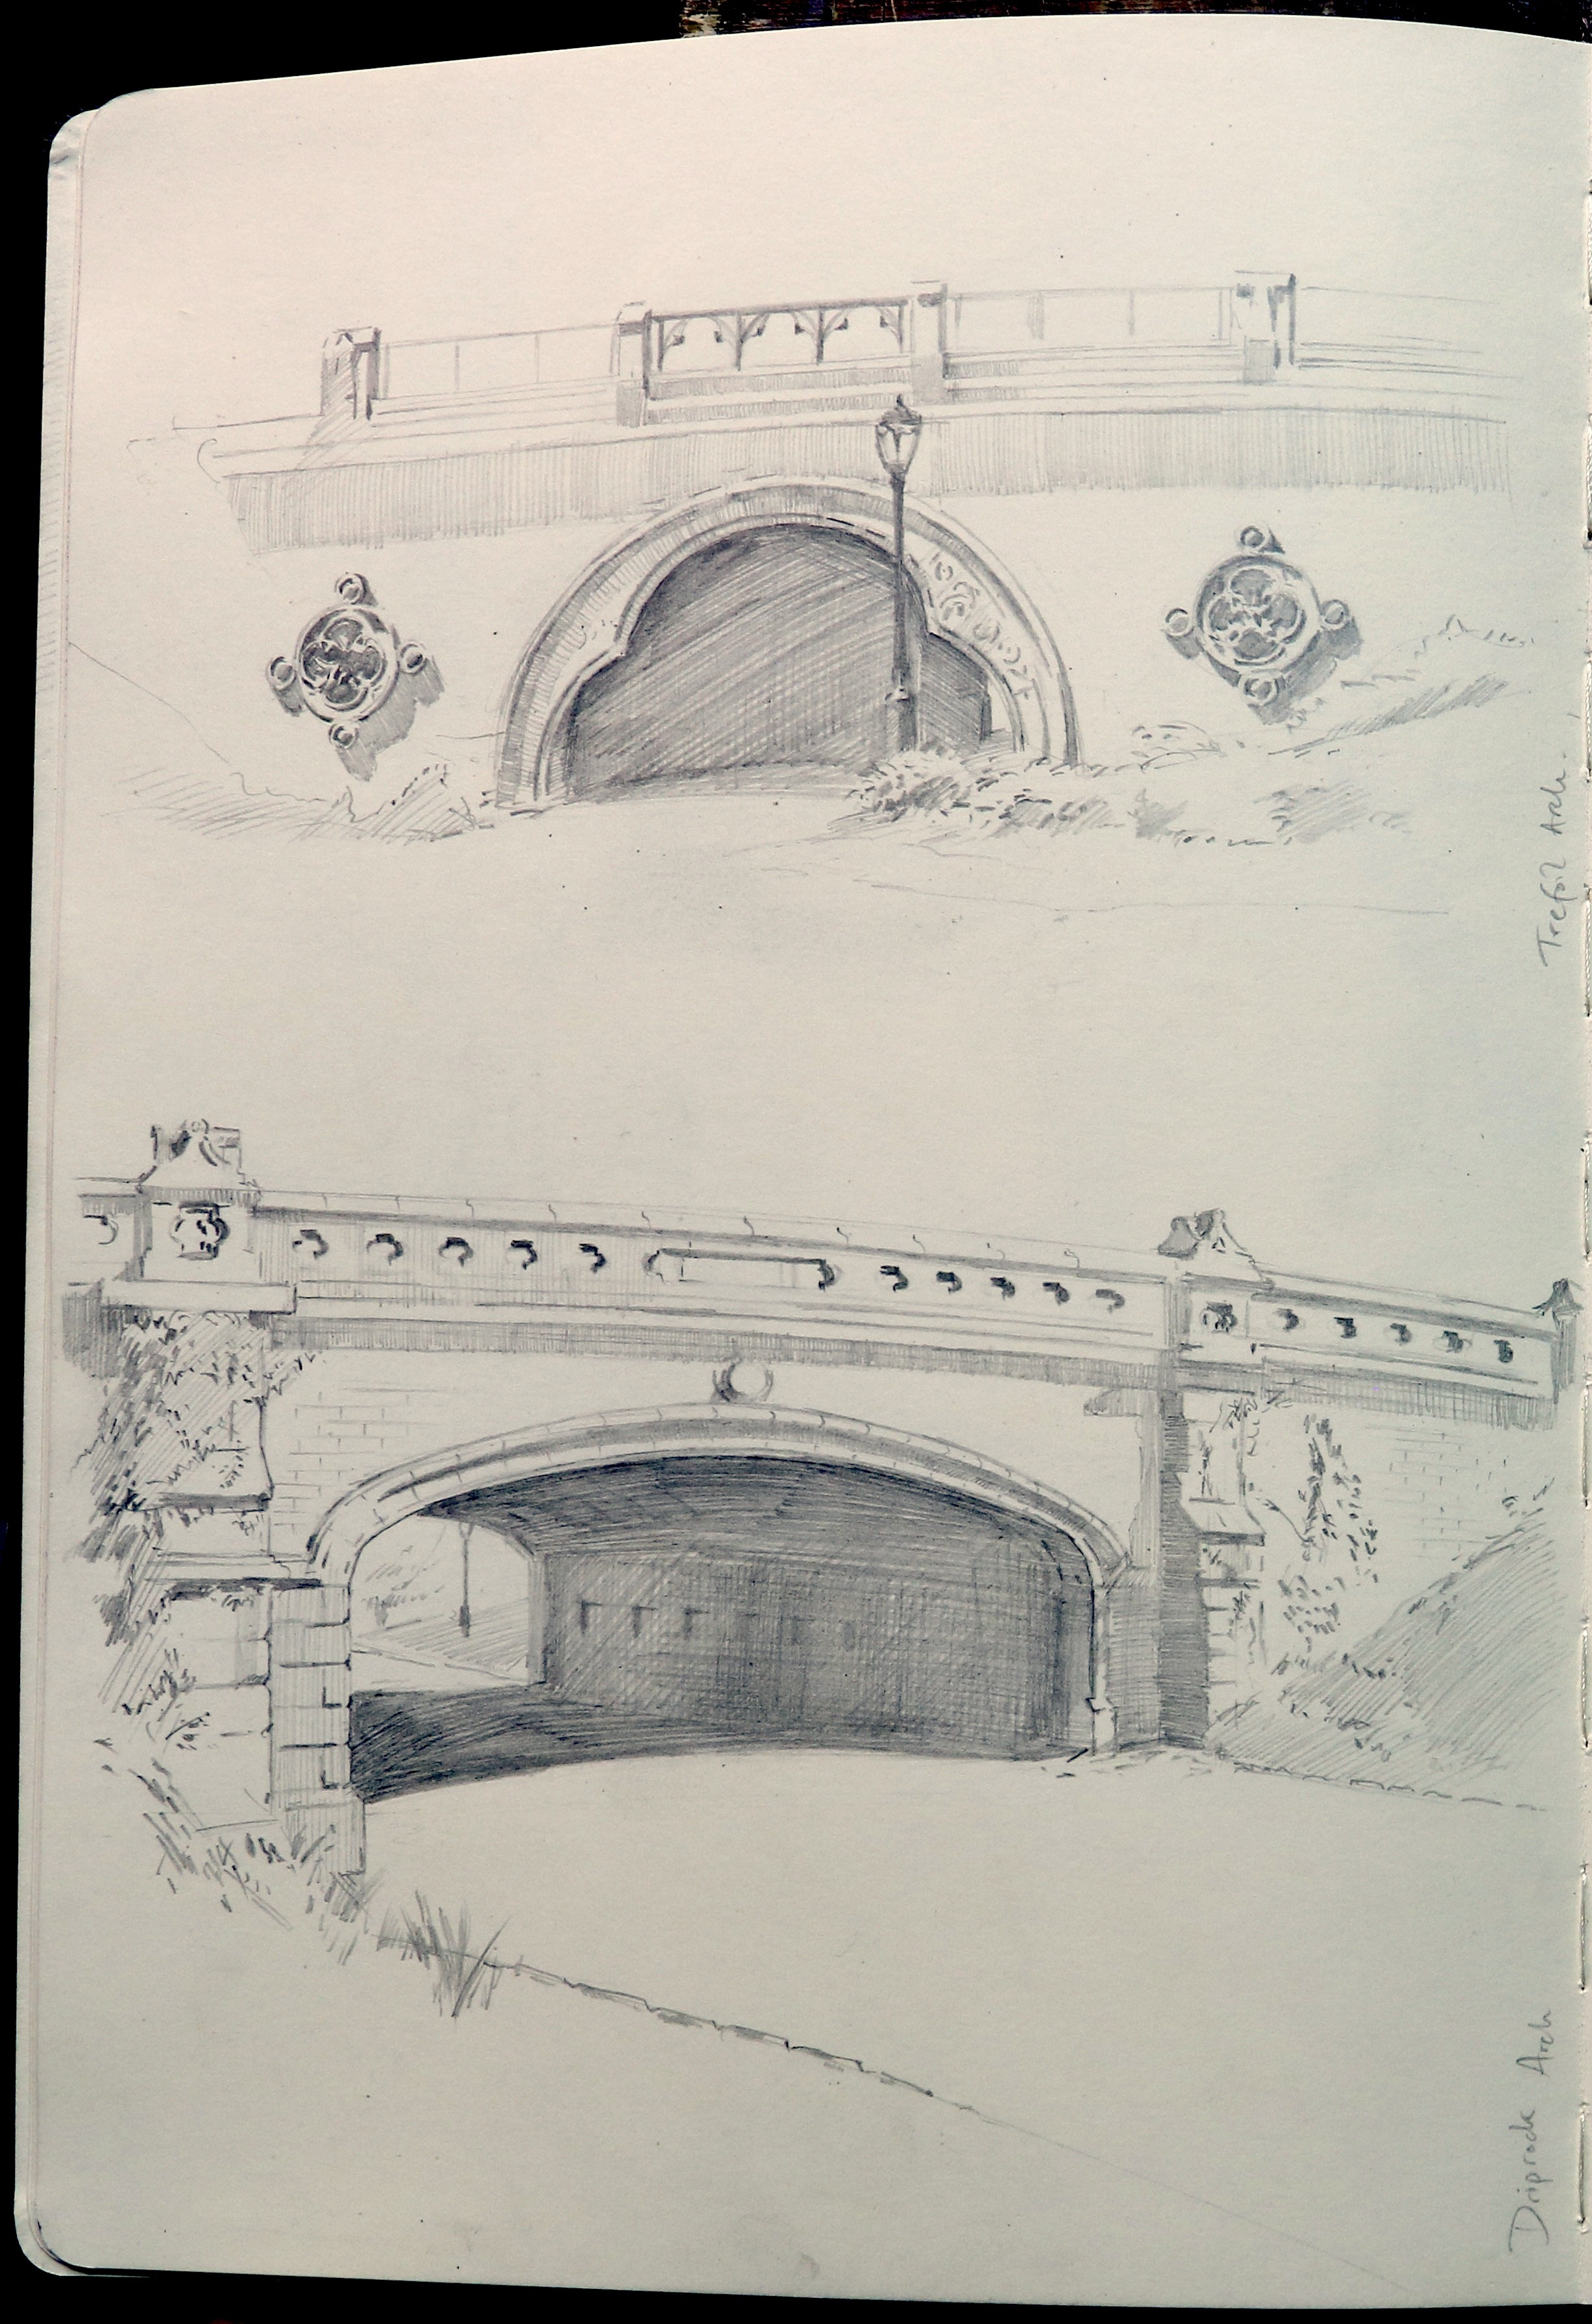 TREFOIL ARCH , built in 1862 by Calvert Vaux and Jacob Wrey Mould.  DRIPROCK ARCH